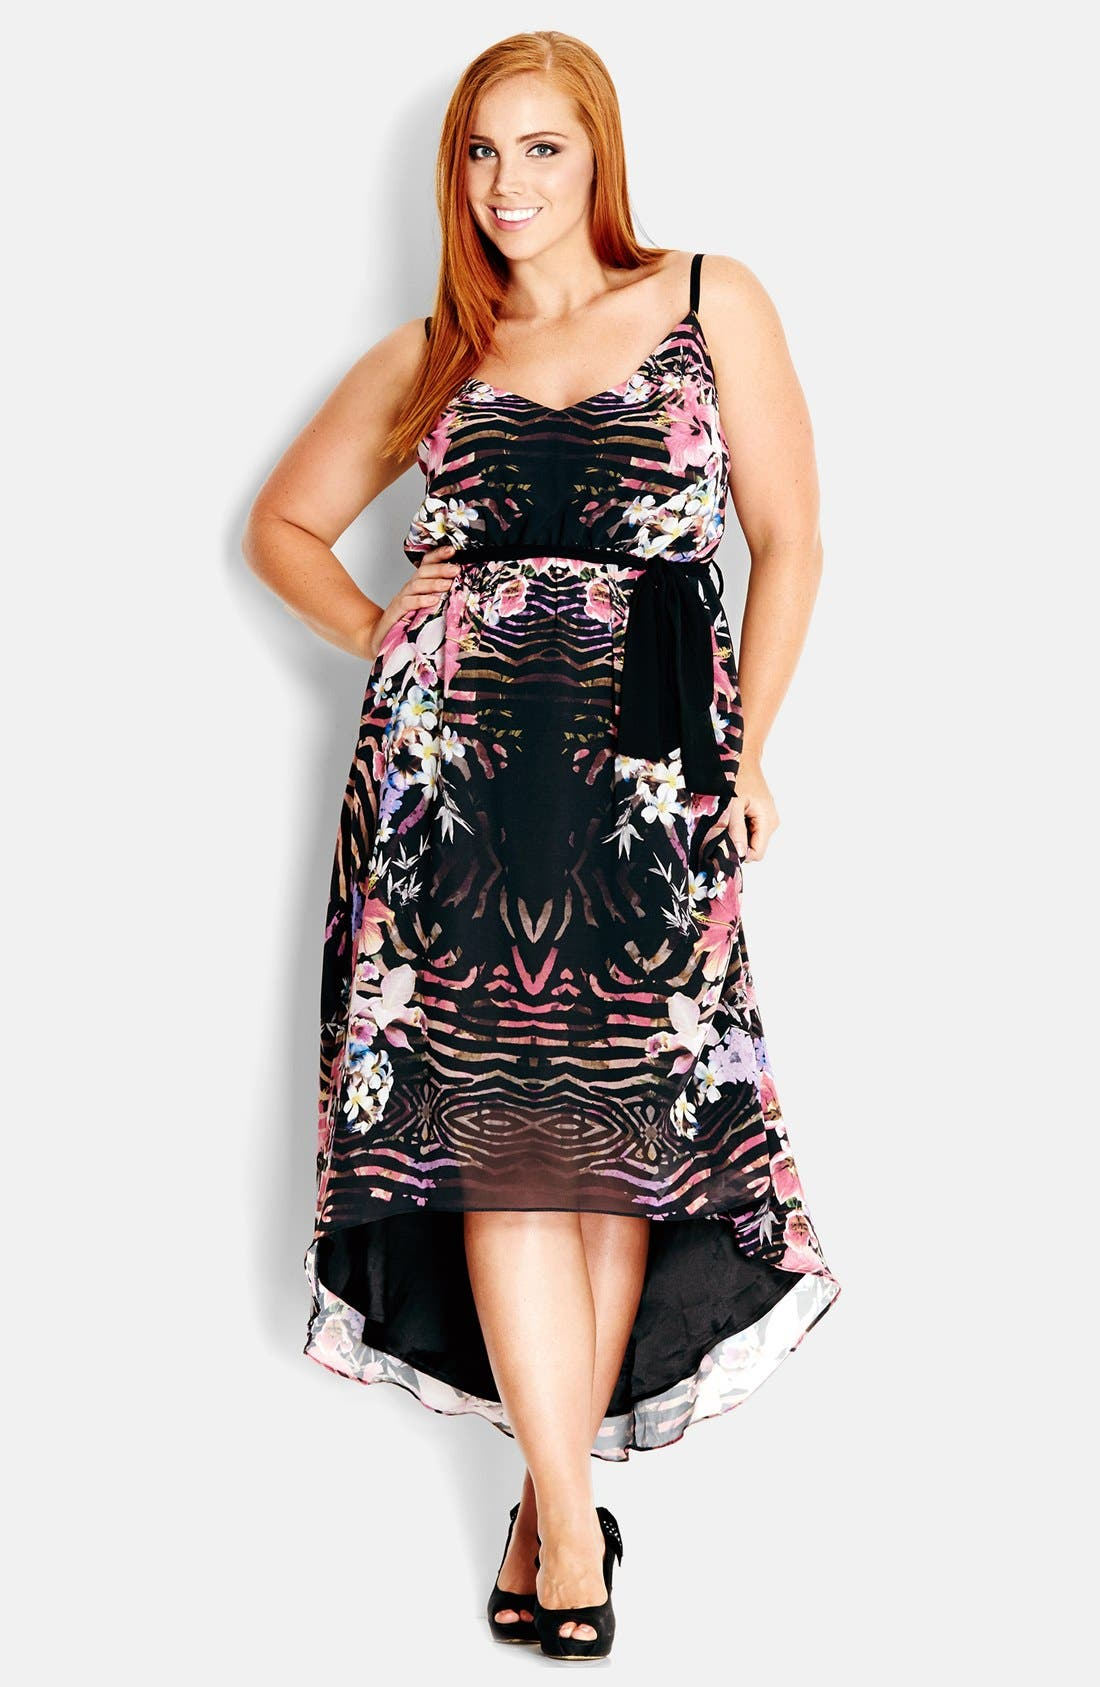 Alternate Image 1 Selected - City Chic 'Jungle Floral' V-Neck High/Low Print Sundress (Plus Size)